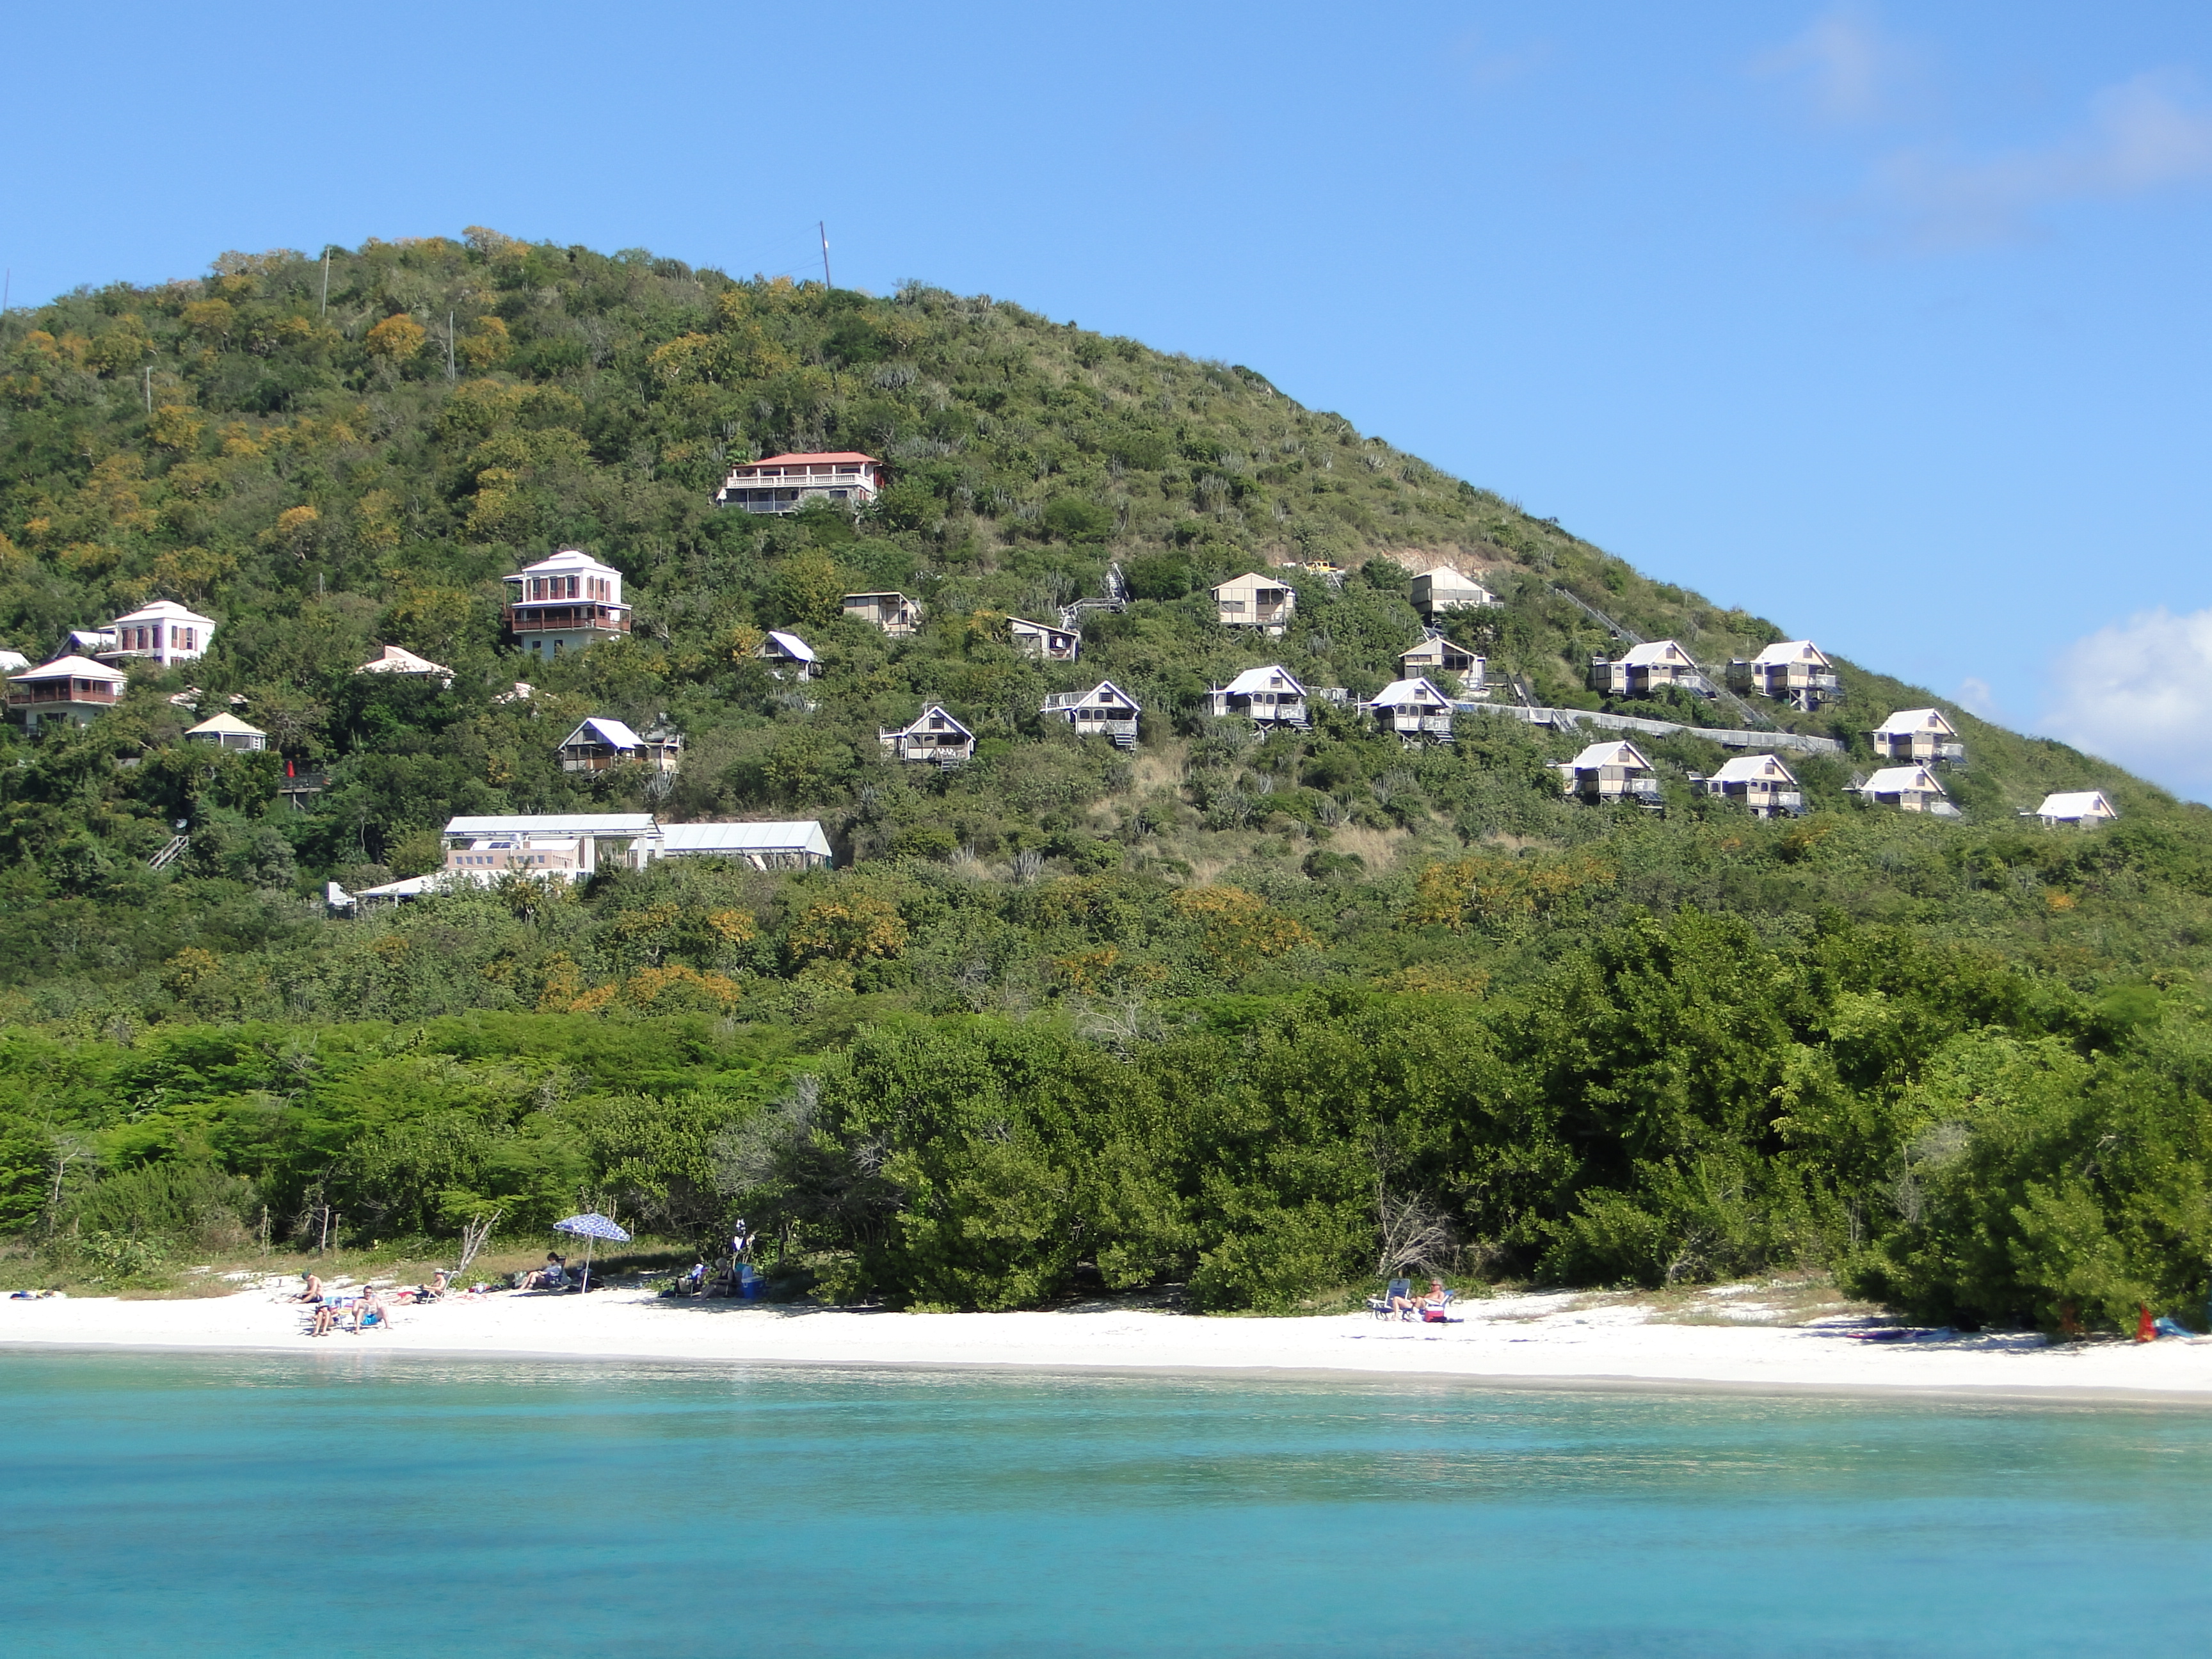 On ... & The Awesomeness that is St. Johnu0027s USVI | thelifebus